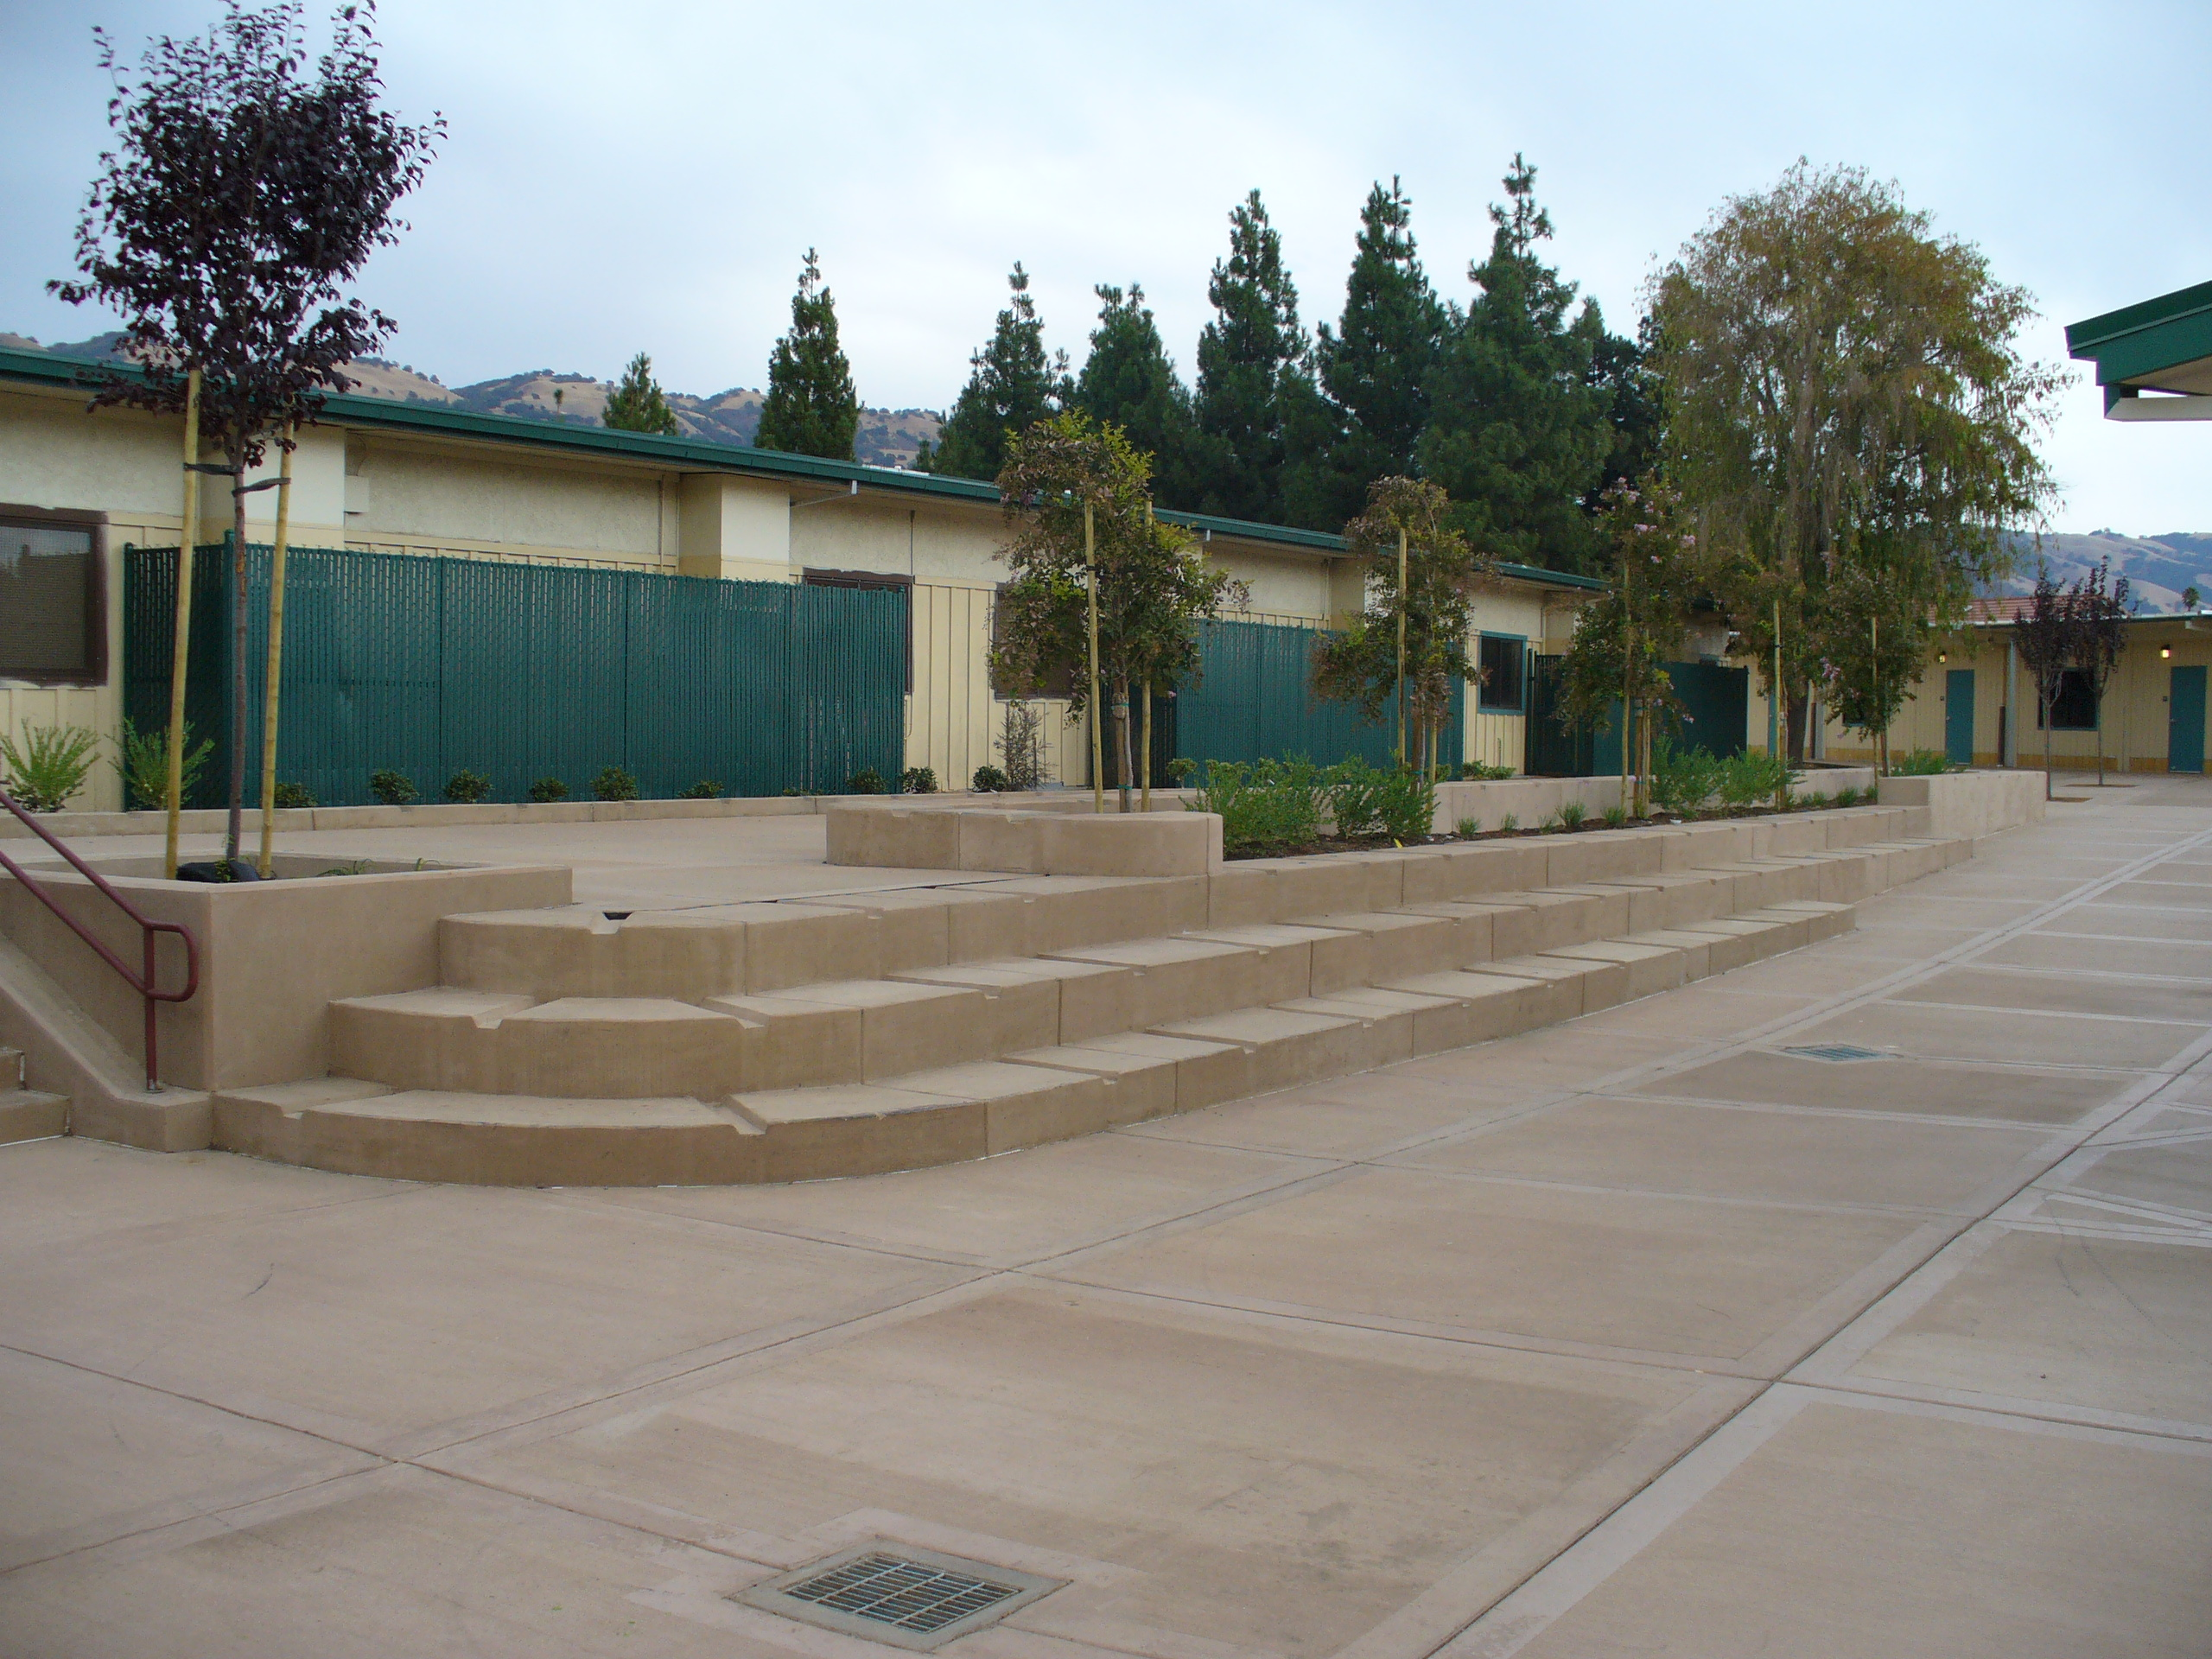 Norwood Creek Elementary School